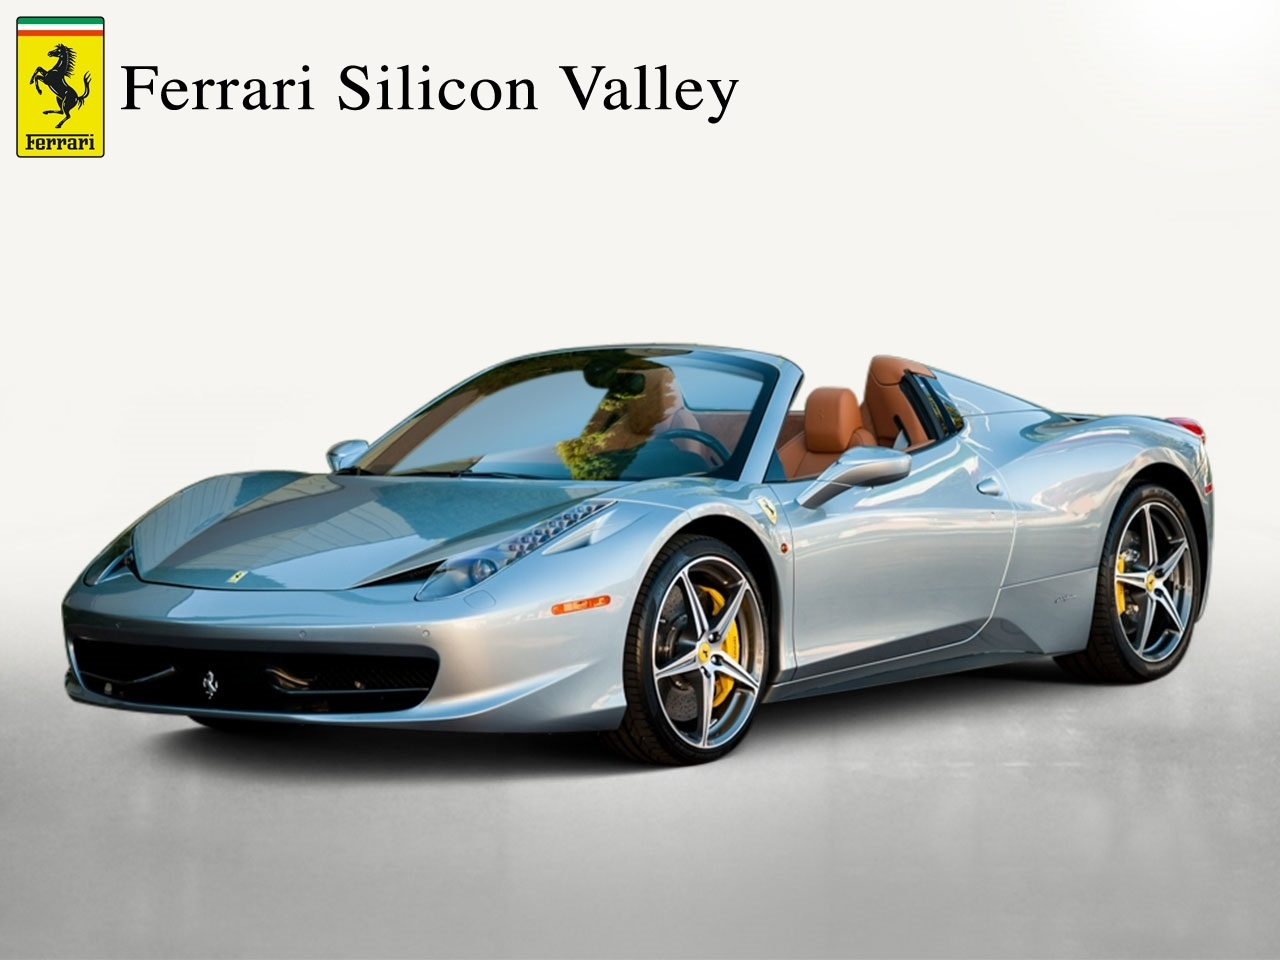 Certified Pre-Owned 2014 Ferrari 458 Spider Convertible For Sale Beverly Hills, California